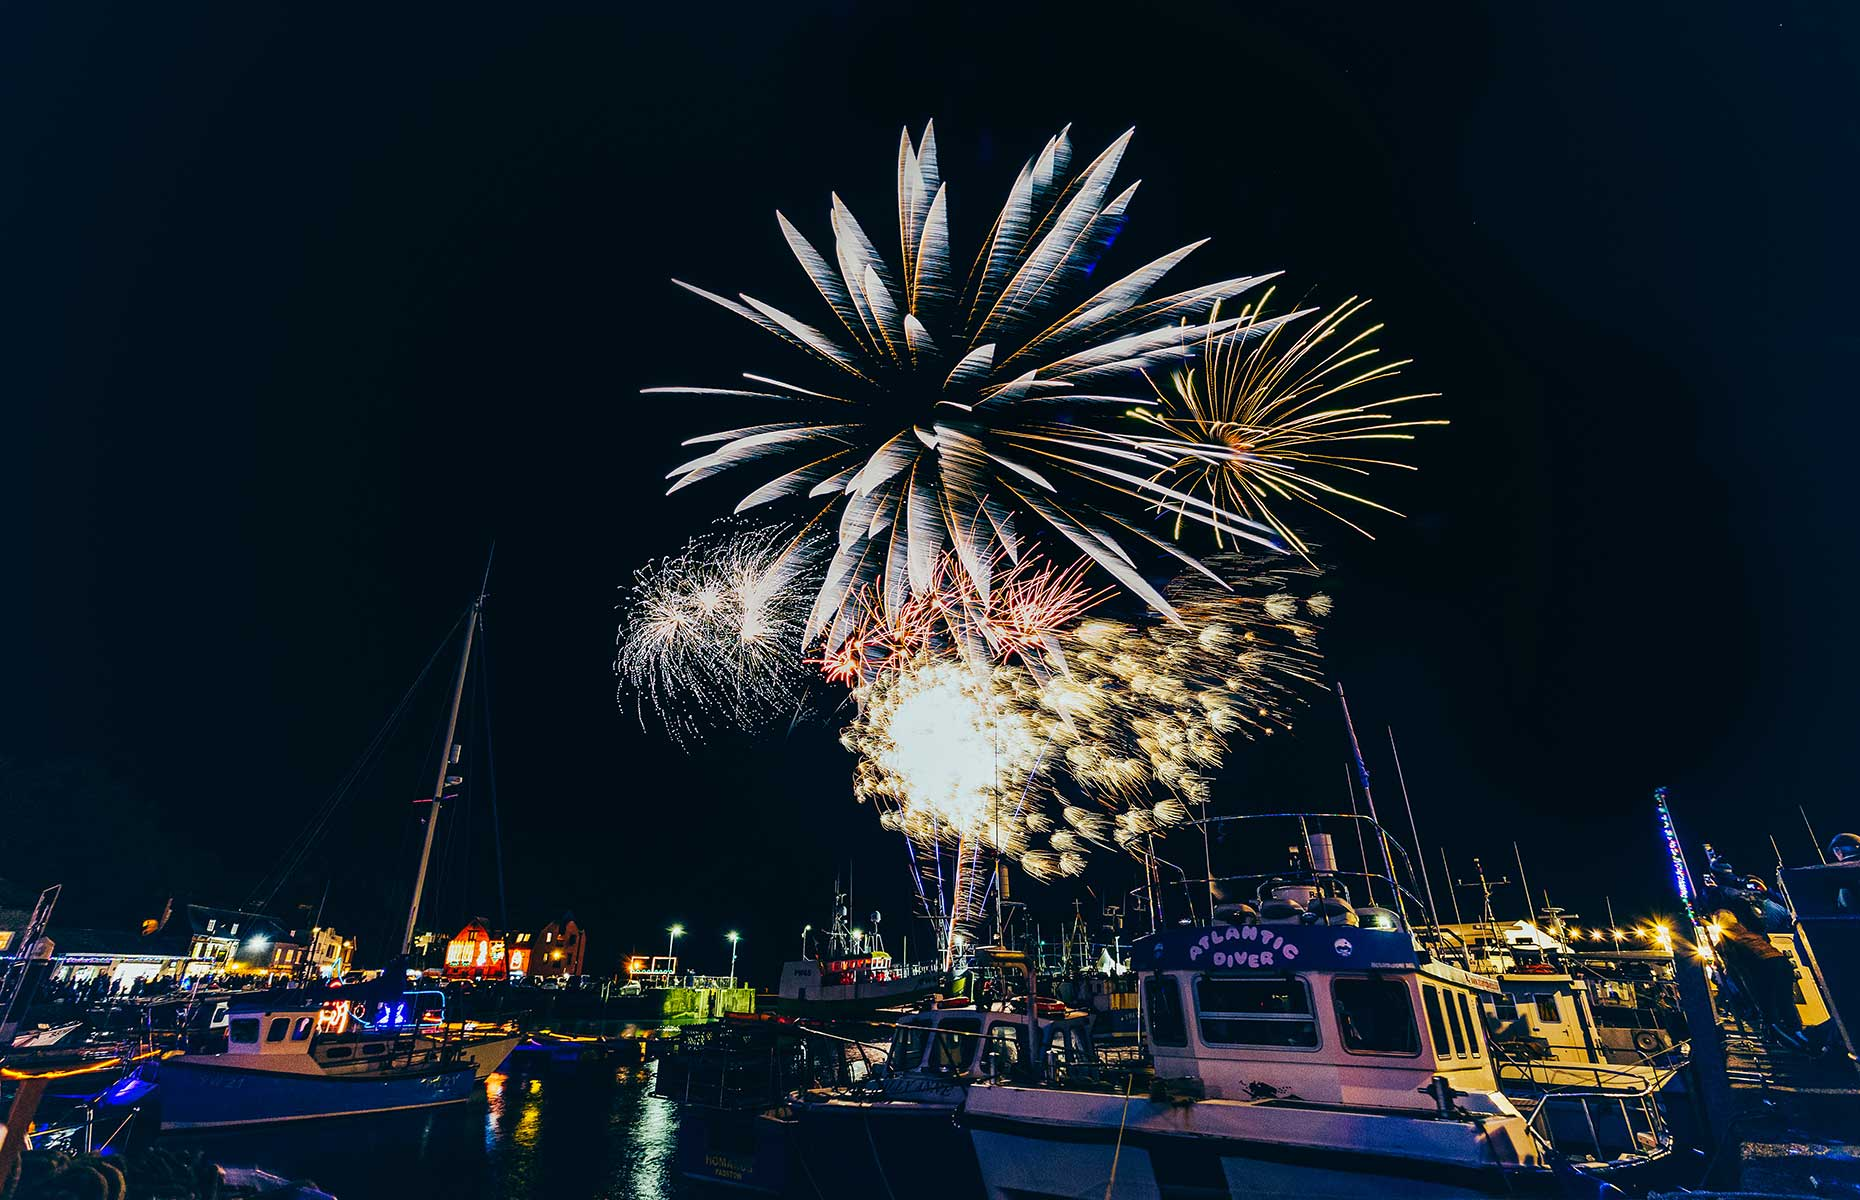 The fireworks display at Padstow Christmas Fesitval is a highlight of the celebrations on the Friday evening